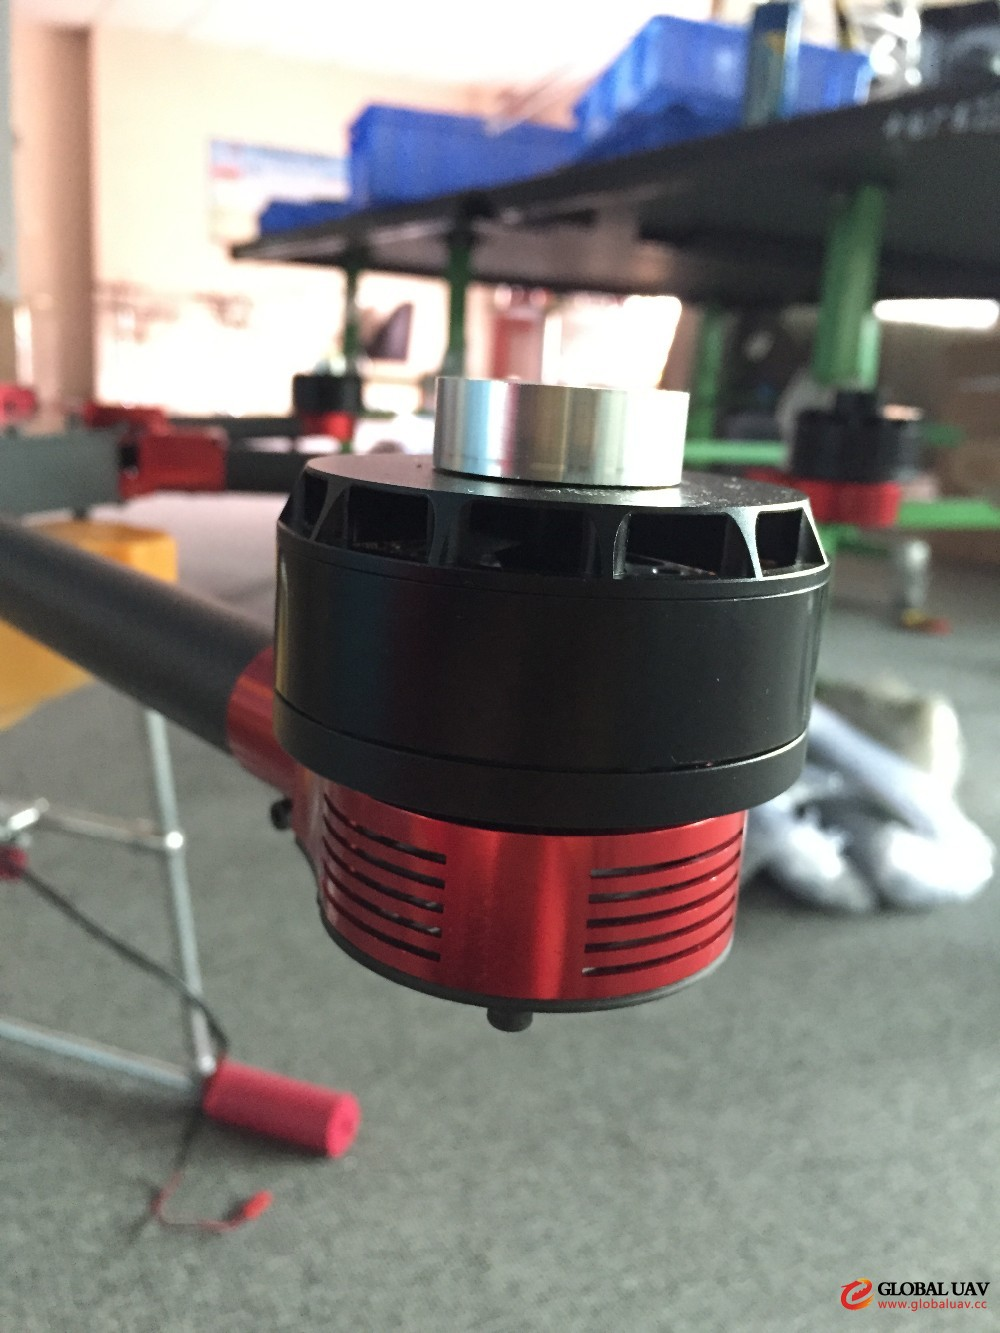 brushless motor Q6L(6215) KV330 KV350 for Mulit Agricultural UAV for Farm